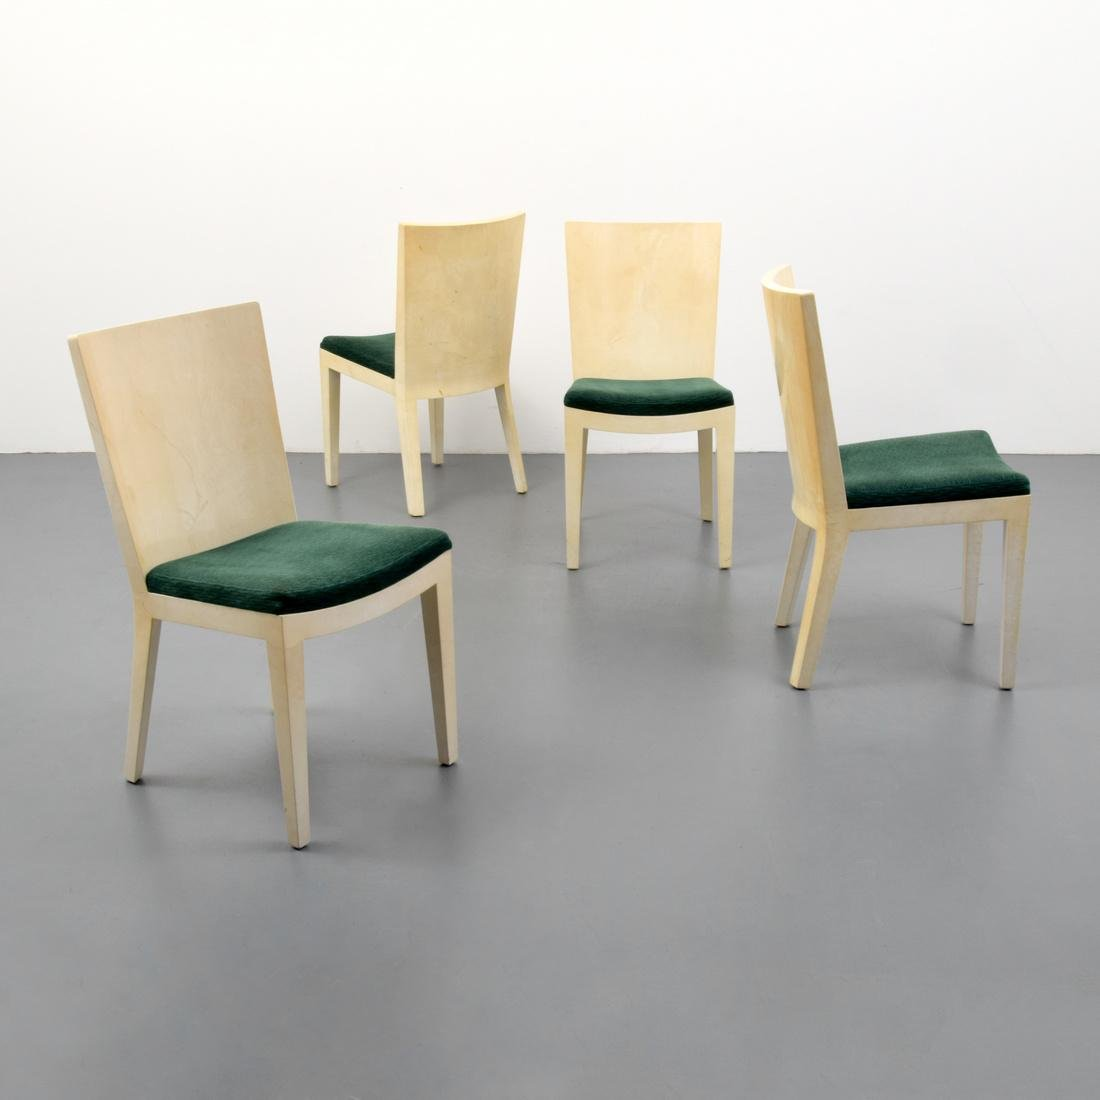 Karl Springer JMF Dining Chairs, Set of 4